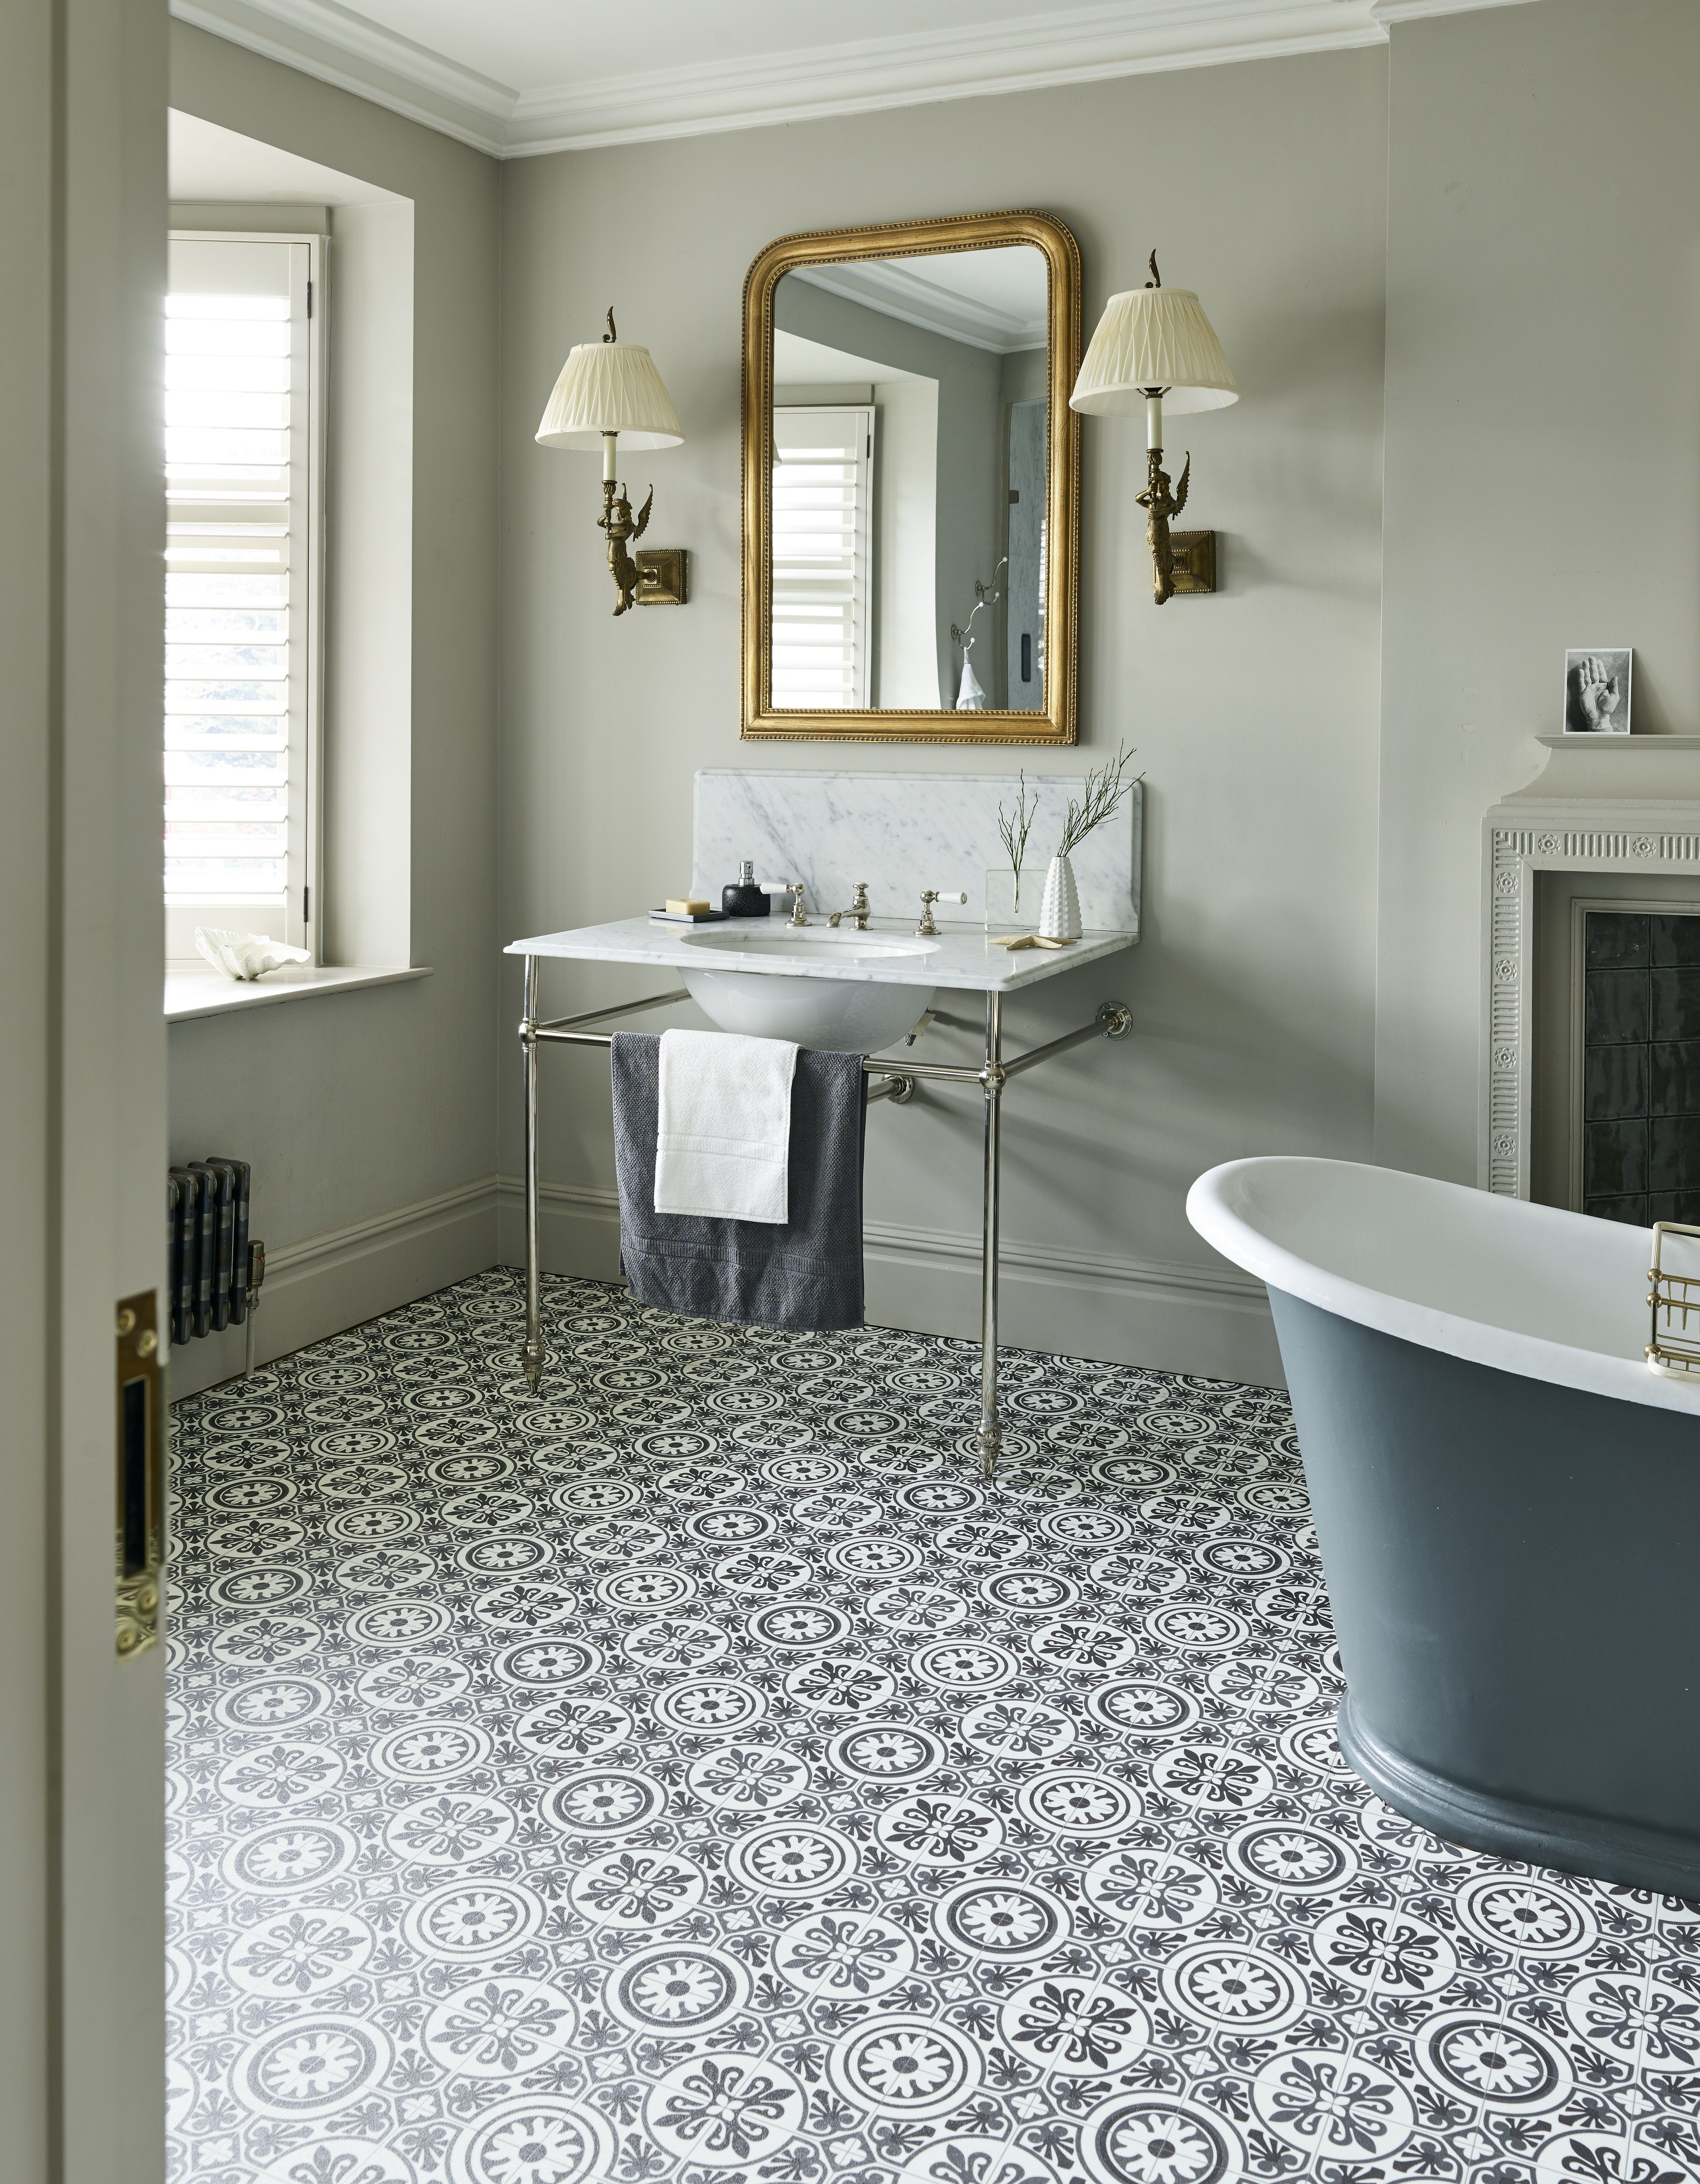 16 Country Bathroom Ideas To Inspire, Country Living Bathrooms